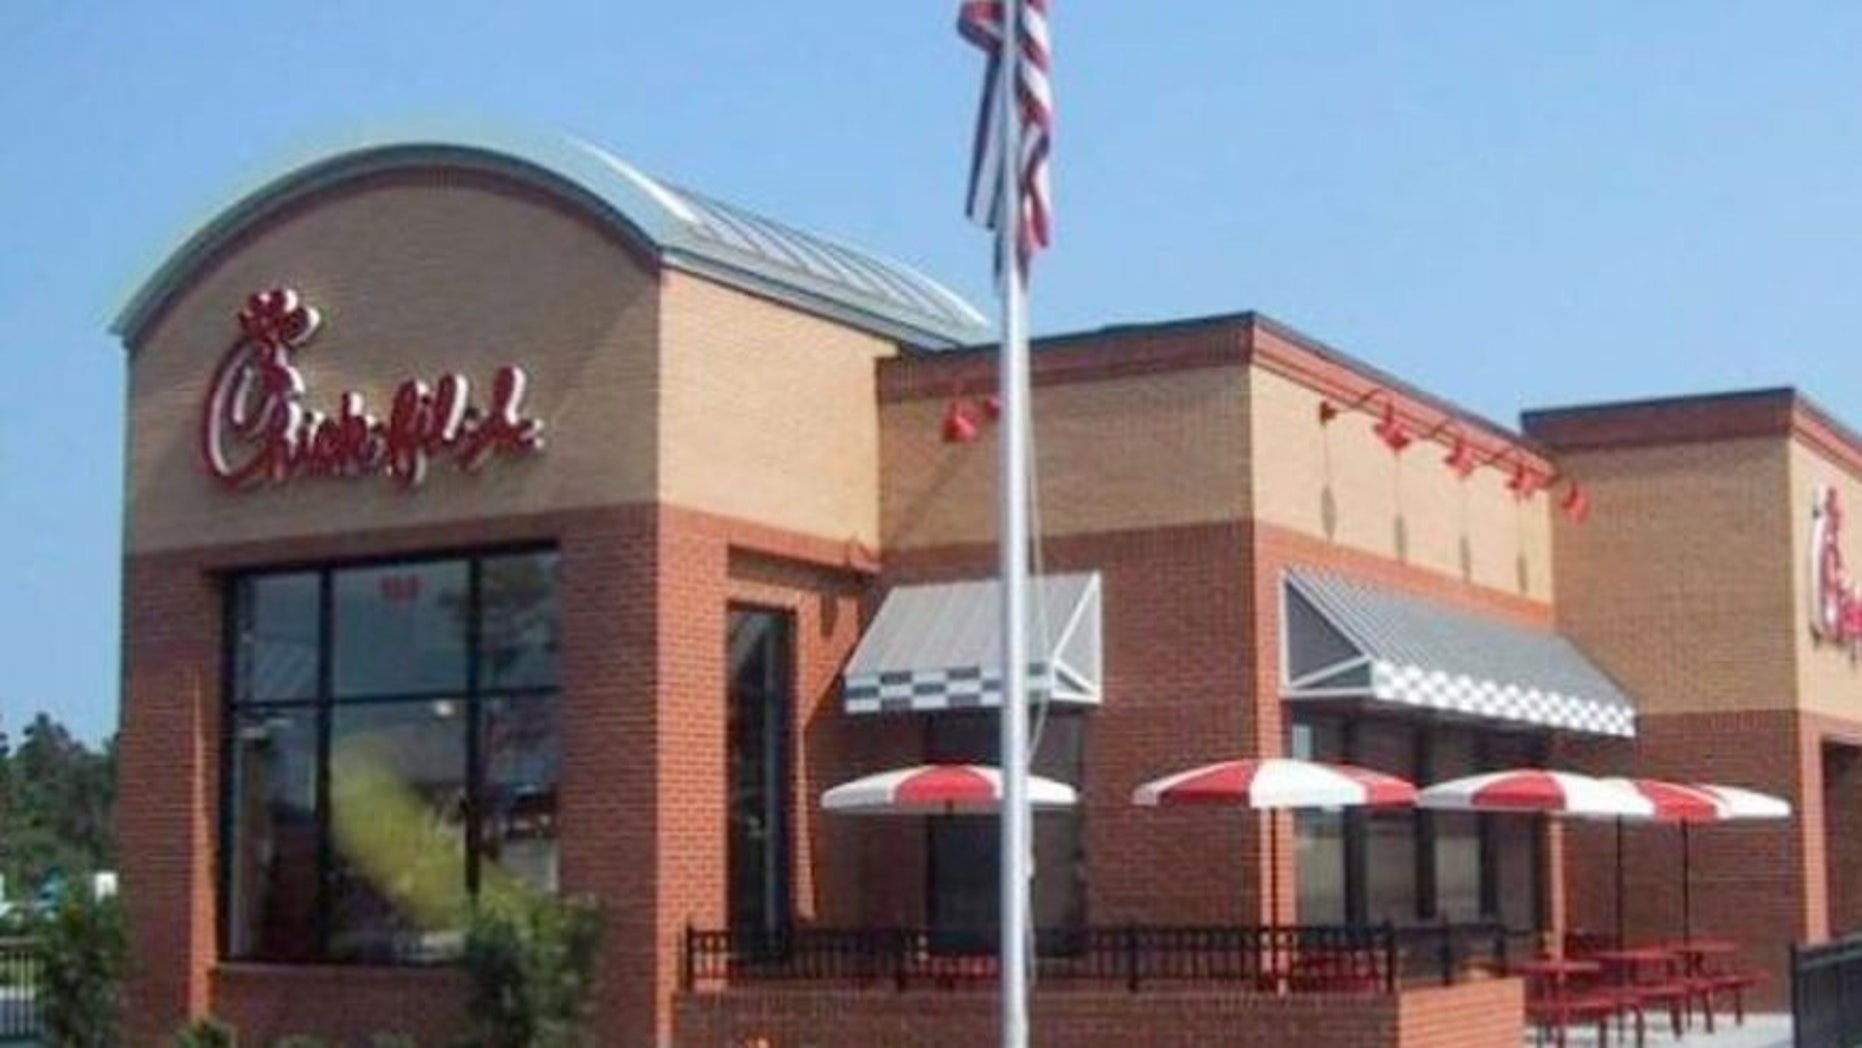 Chick-fil-A's bag suggests that eating more of its grilled chicken nuggets can help shed pounds.